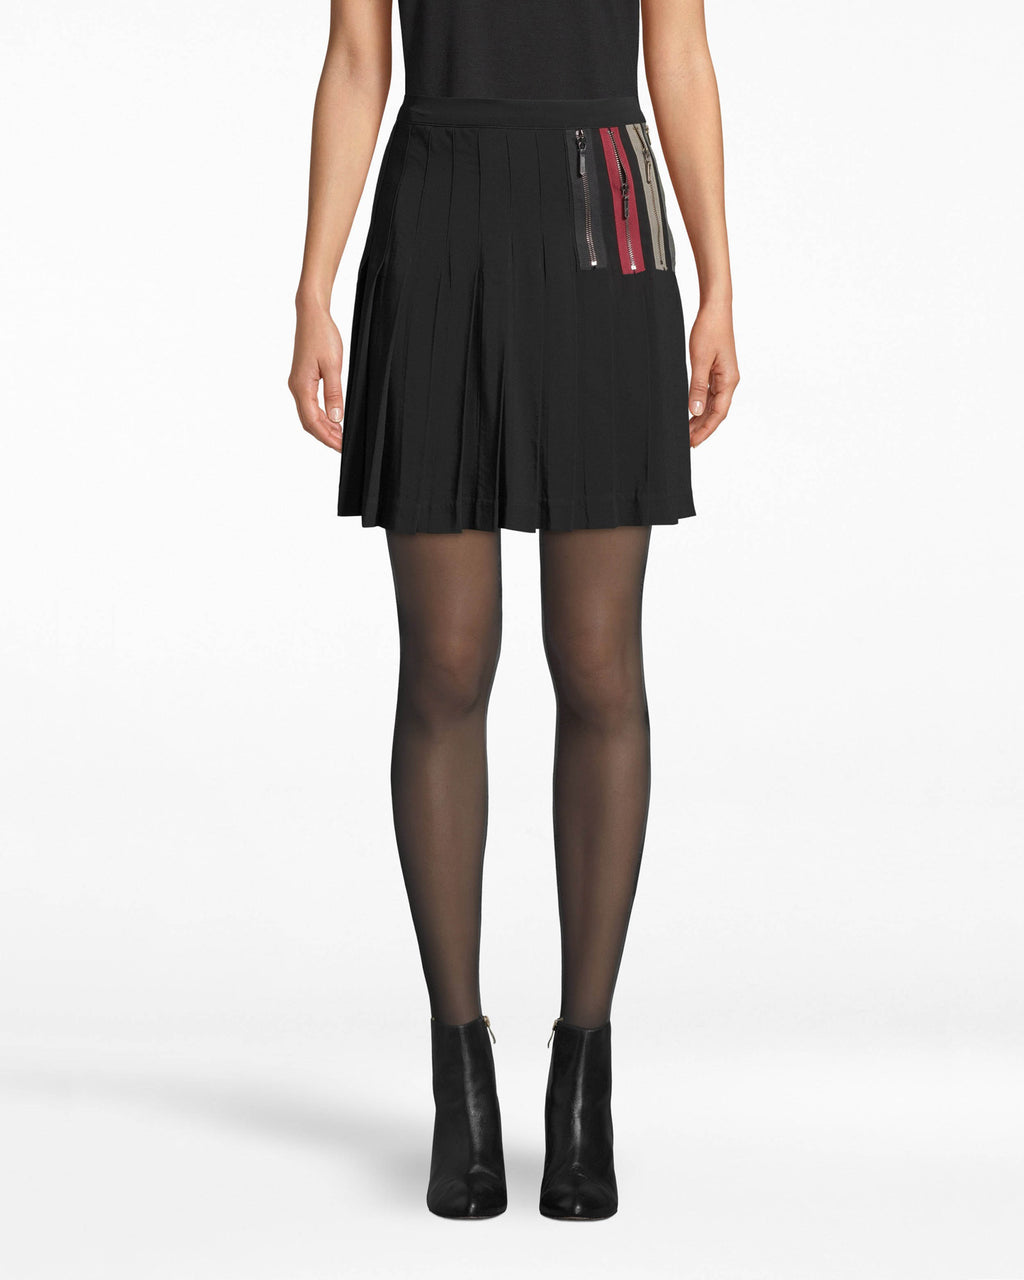 BC10298 - EXPOSED ZIPPERS PLEATED MINI SKIRT - bottoms - skirts - Pleats, meet zippers. This above-the-knee skirt is a style of many features, like the chic asymmetrcal hem, unexpected zippers on the hip, and breezy pleating. To match, pair back with our Zipper Stripe Zip Front Boyfriend Blouse.